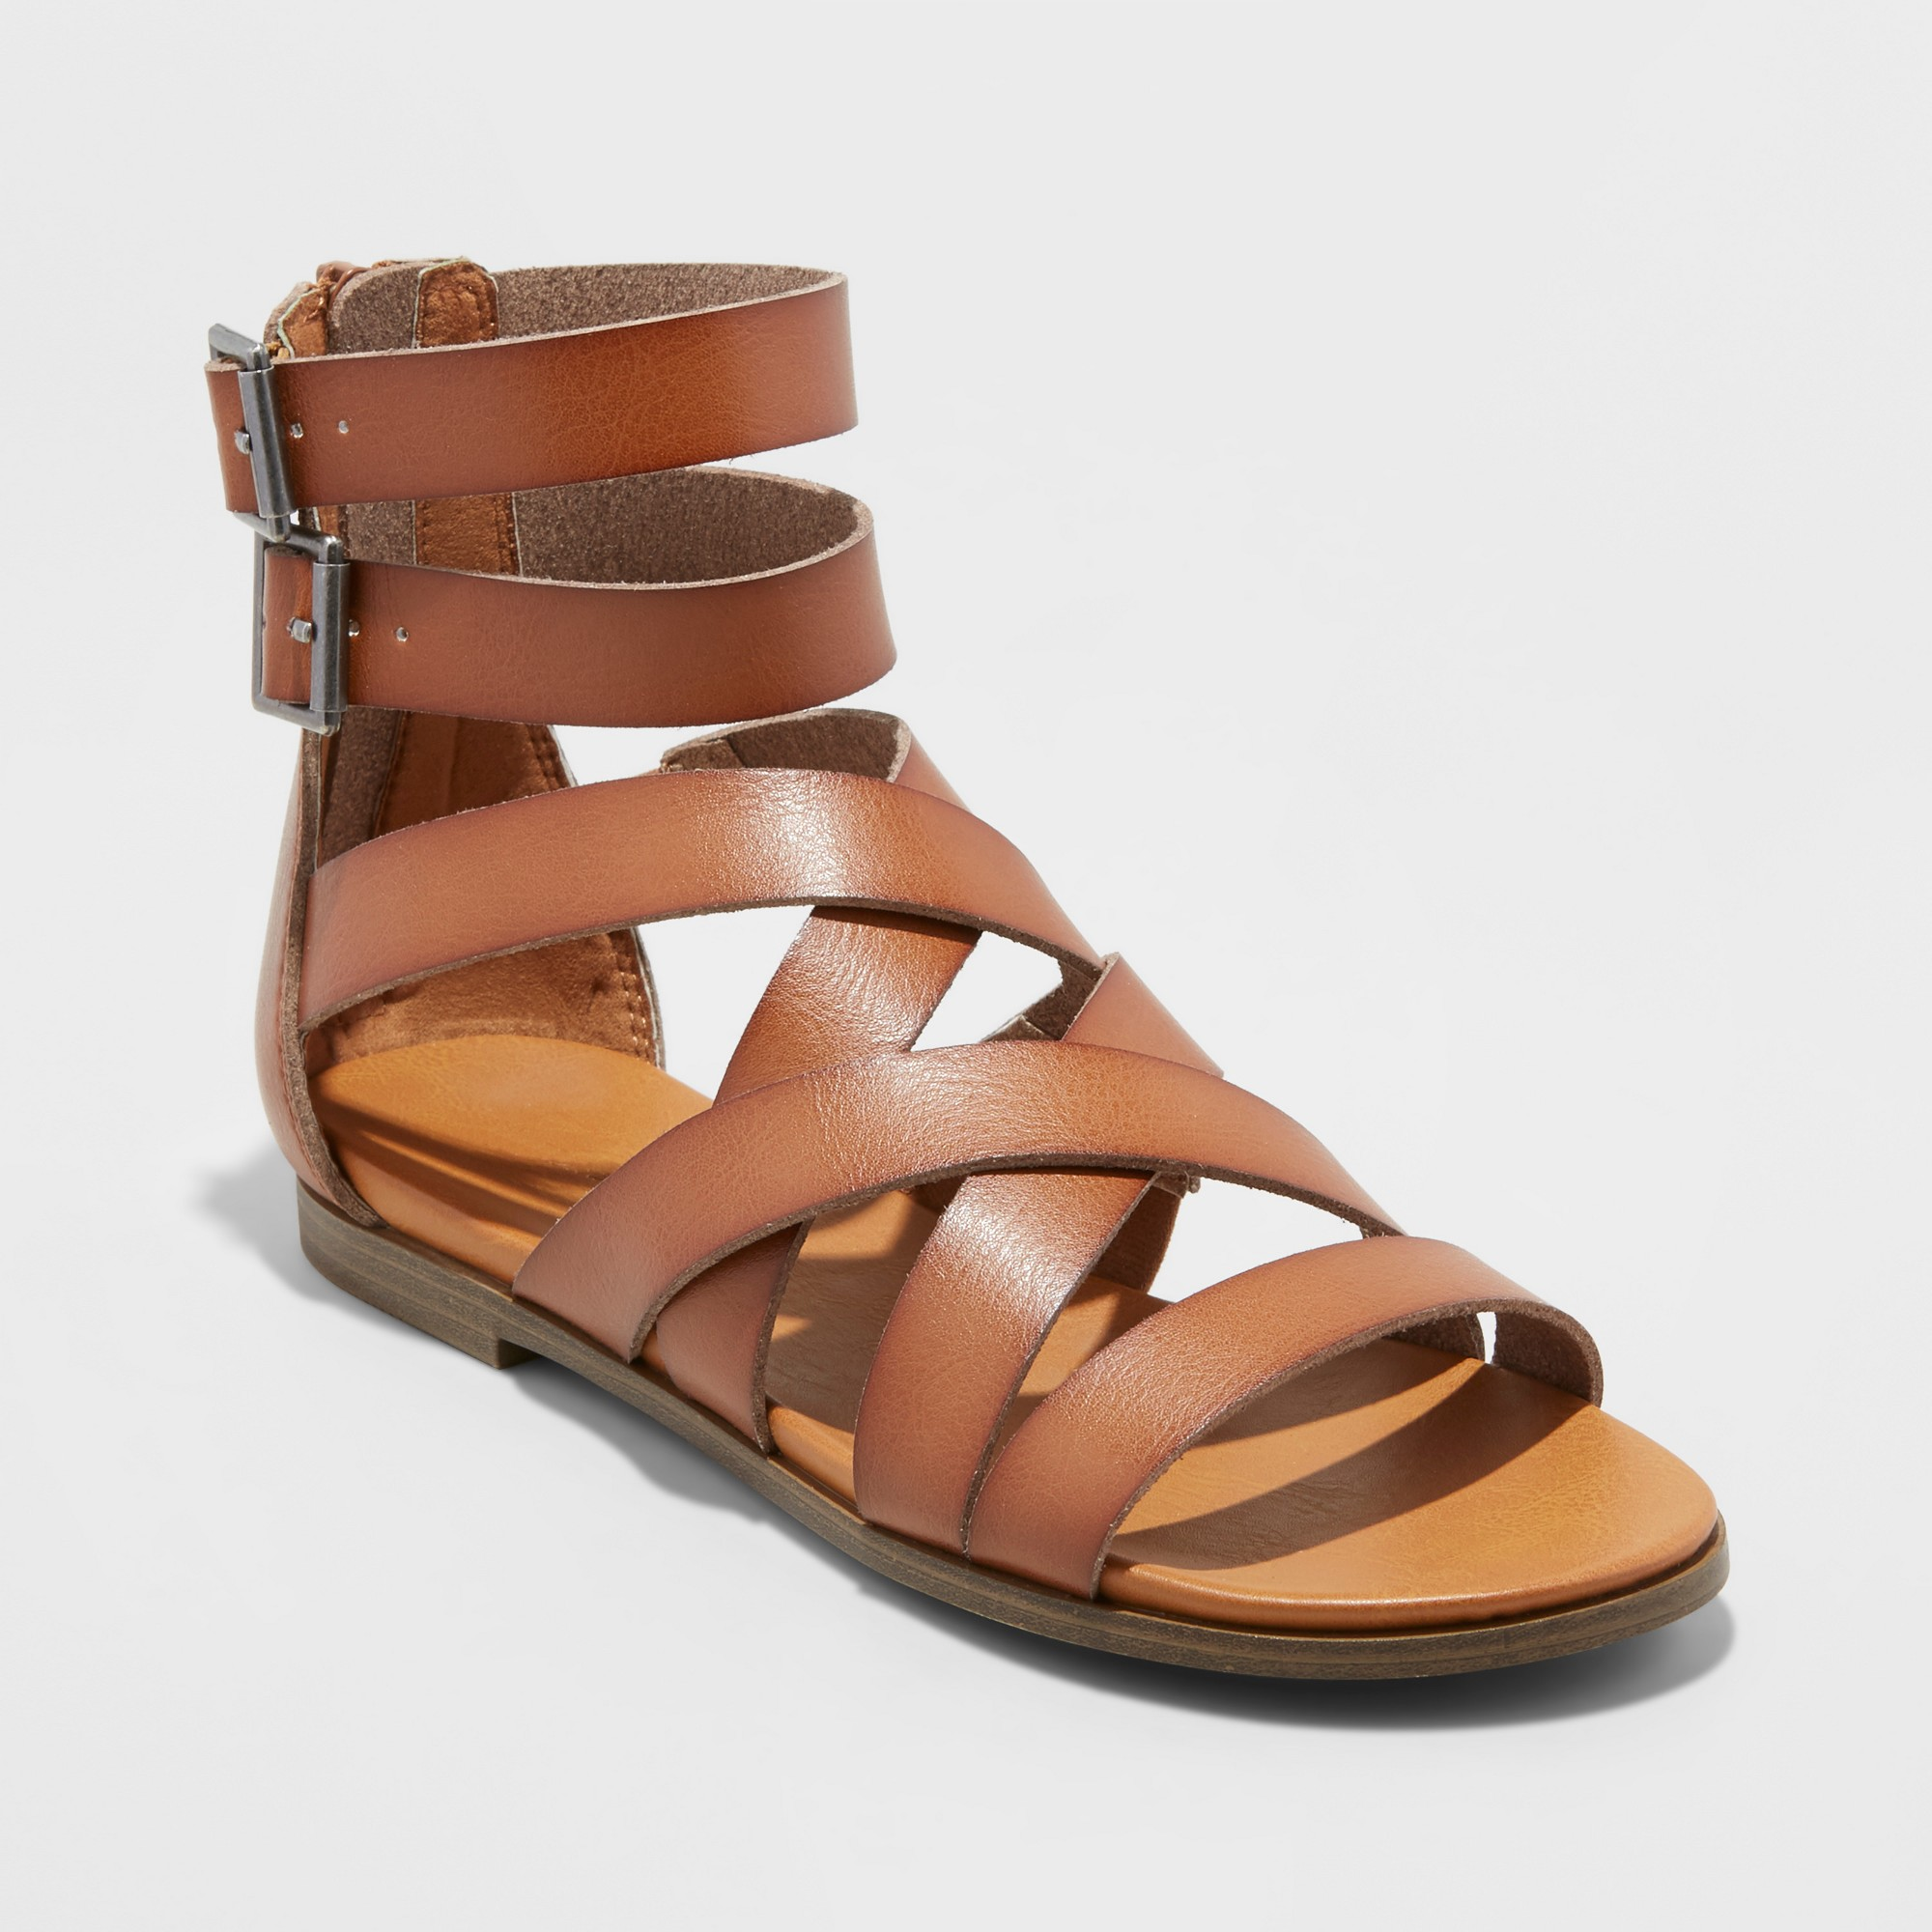 4e878bdfb35 Women s Rosalee Wide Width Gladiator Sandals - Universal Thread Cognac  (Red) 6.5W